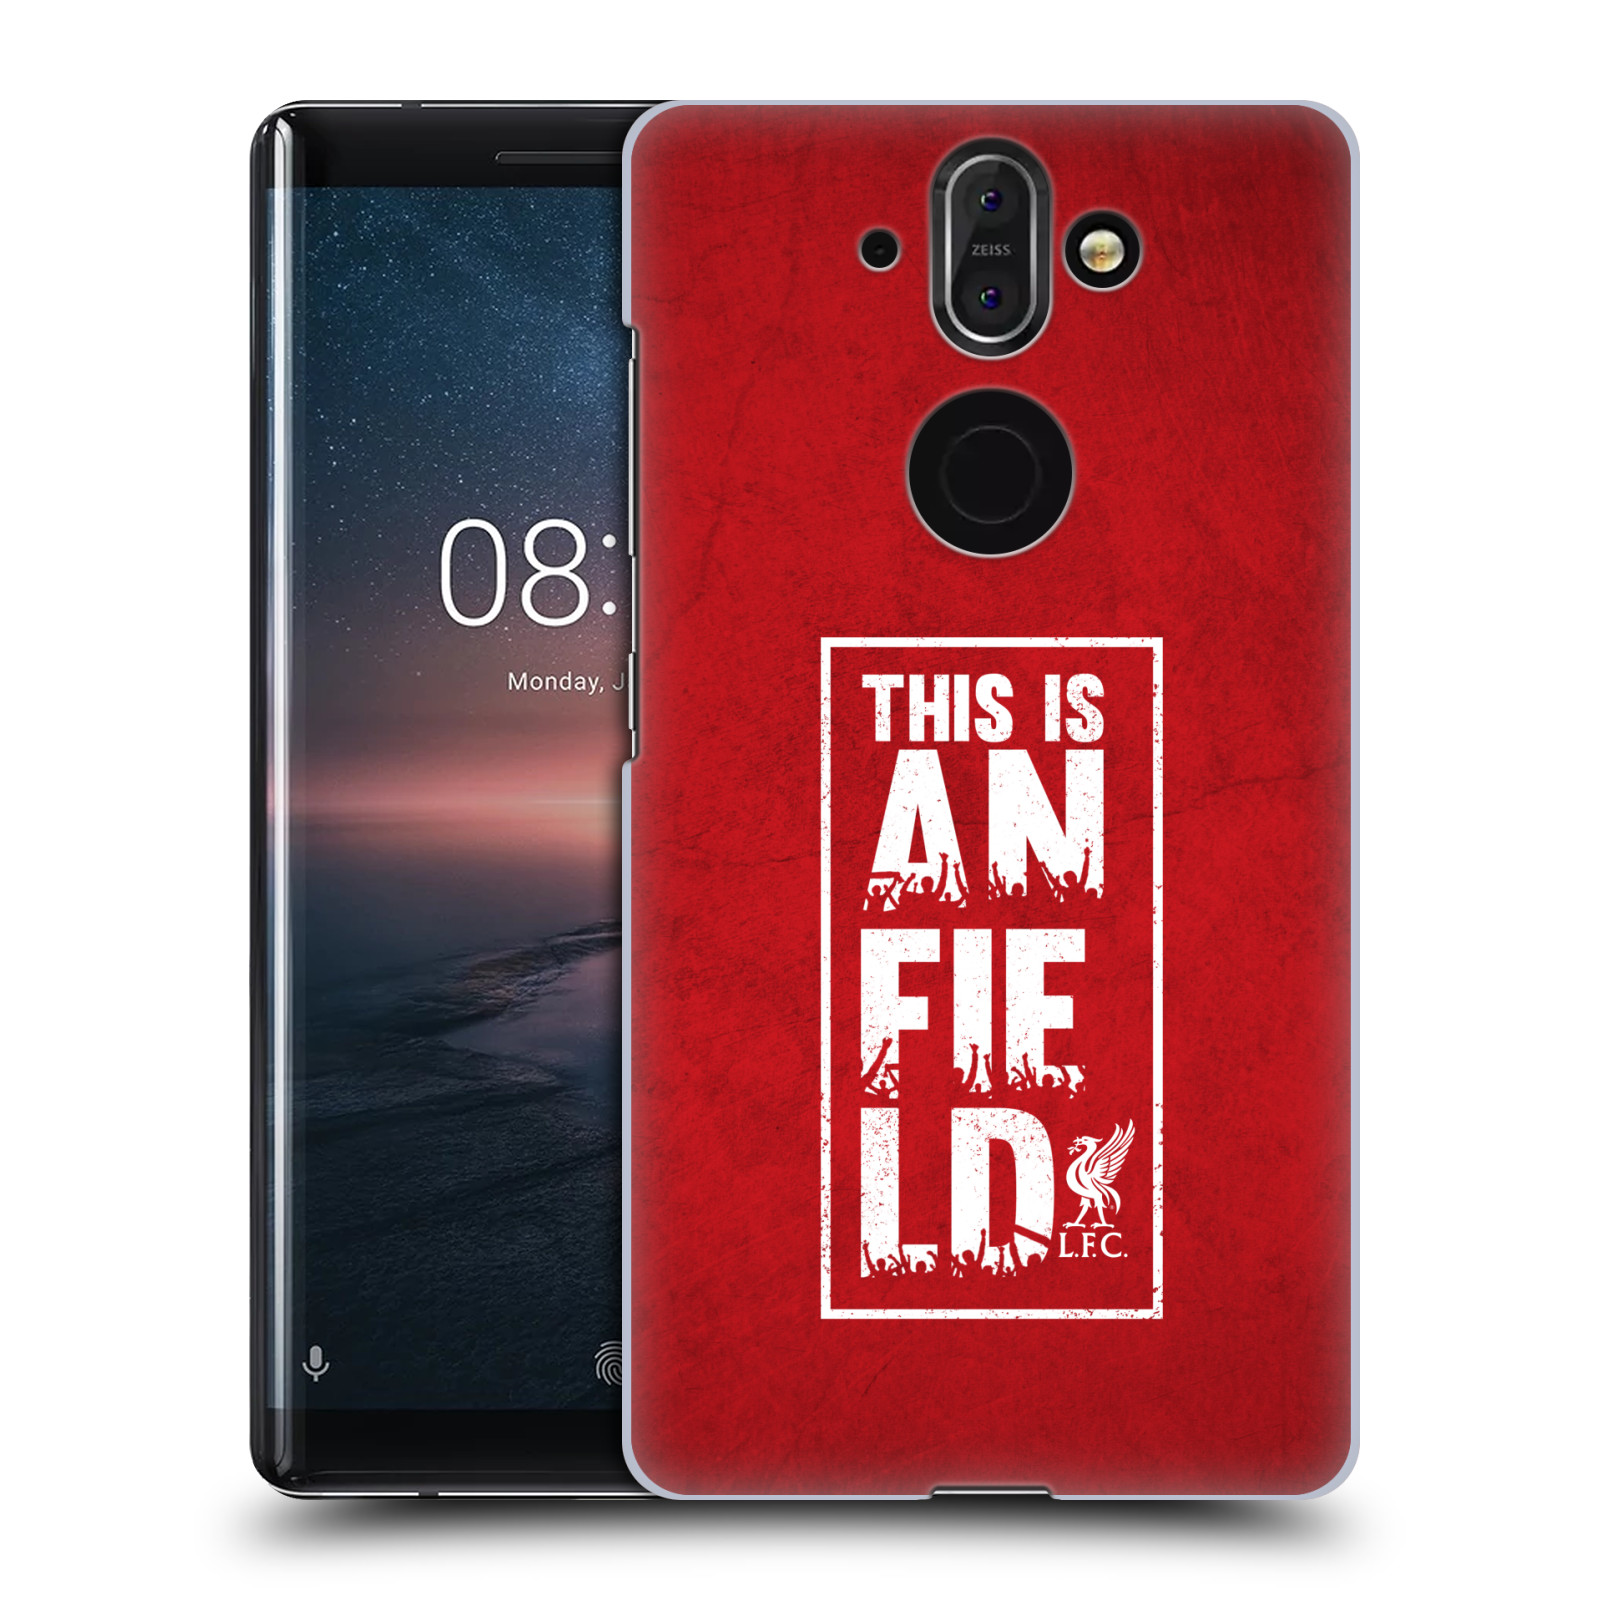 Plastové pouzdro na mobil Nokia 8 Sirocco - Head Case - Liverpool FC This Is Anfield Red